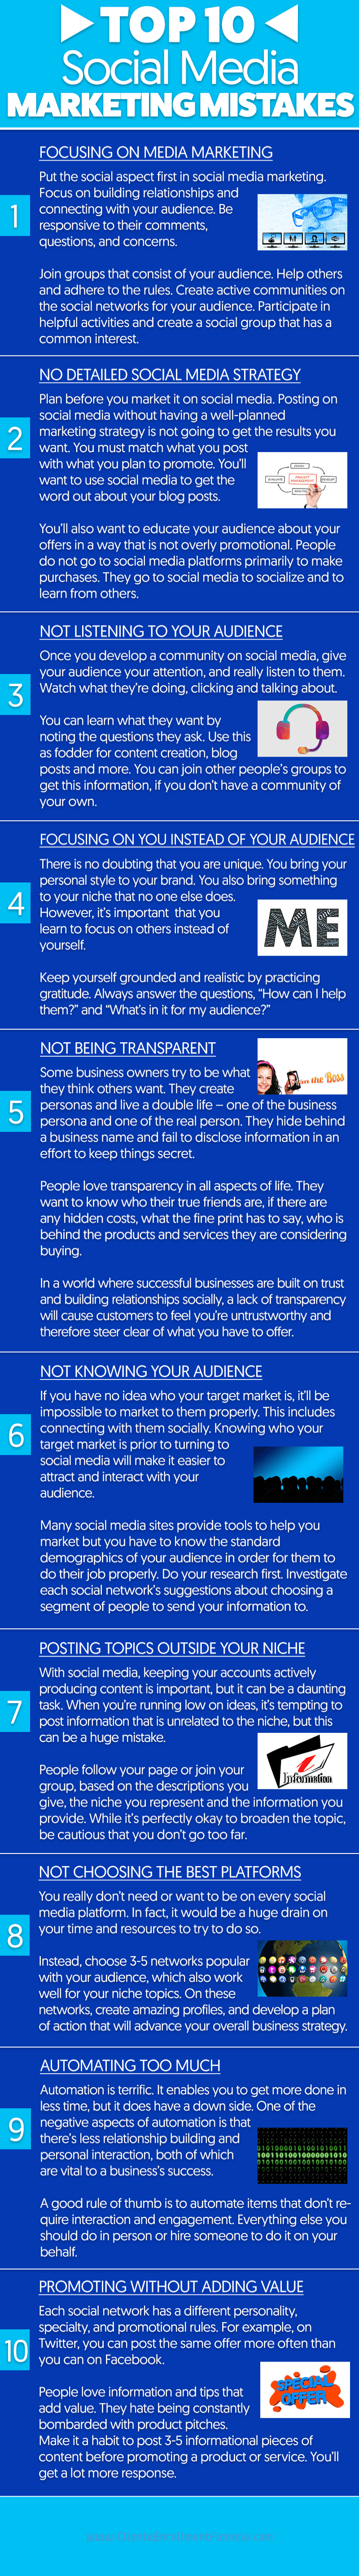 Top 10 Social Media Marketing Mistakes - Infographic